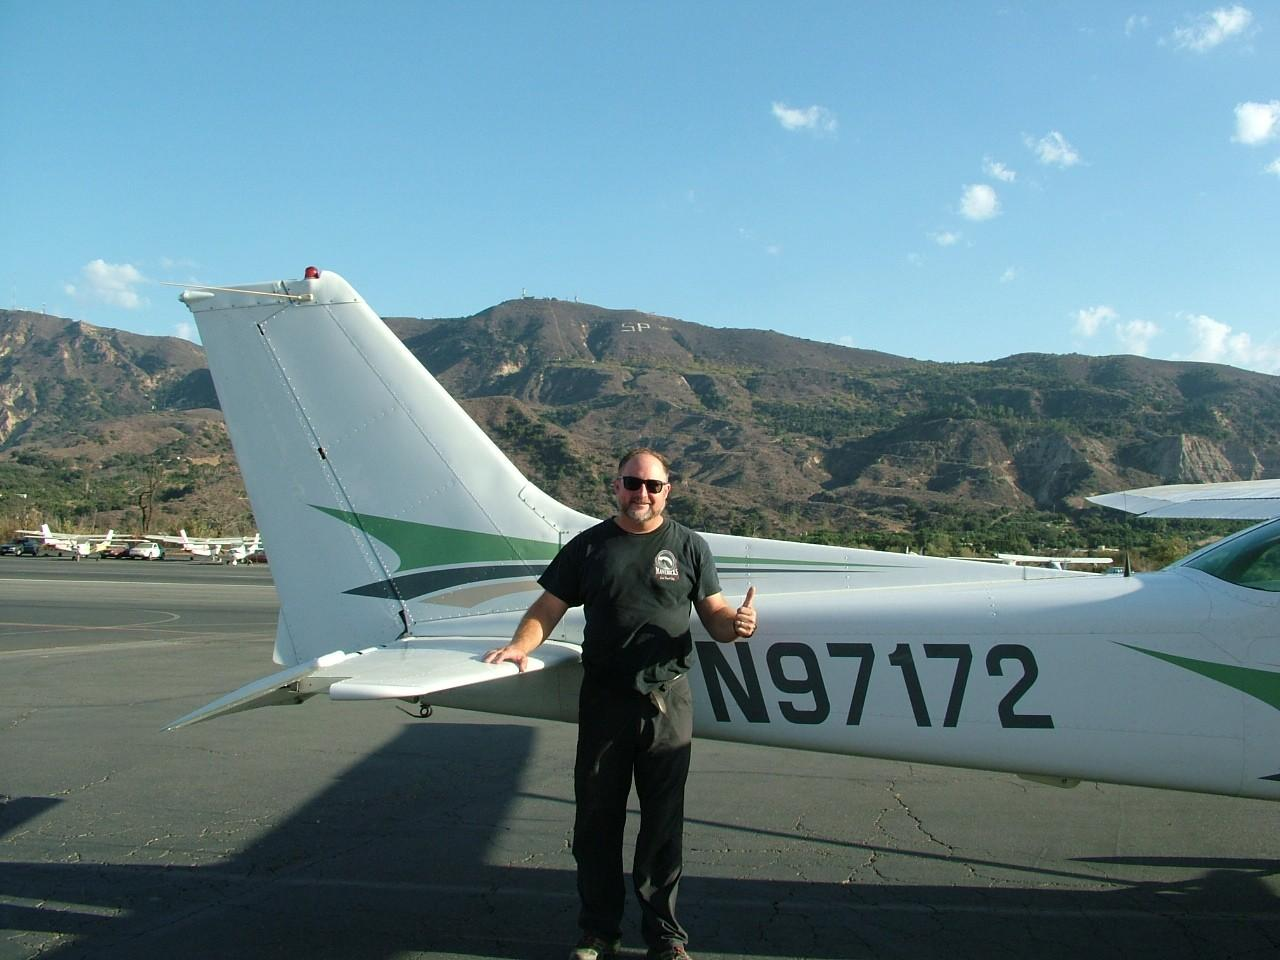 Brent Jacobs - First Solo!